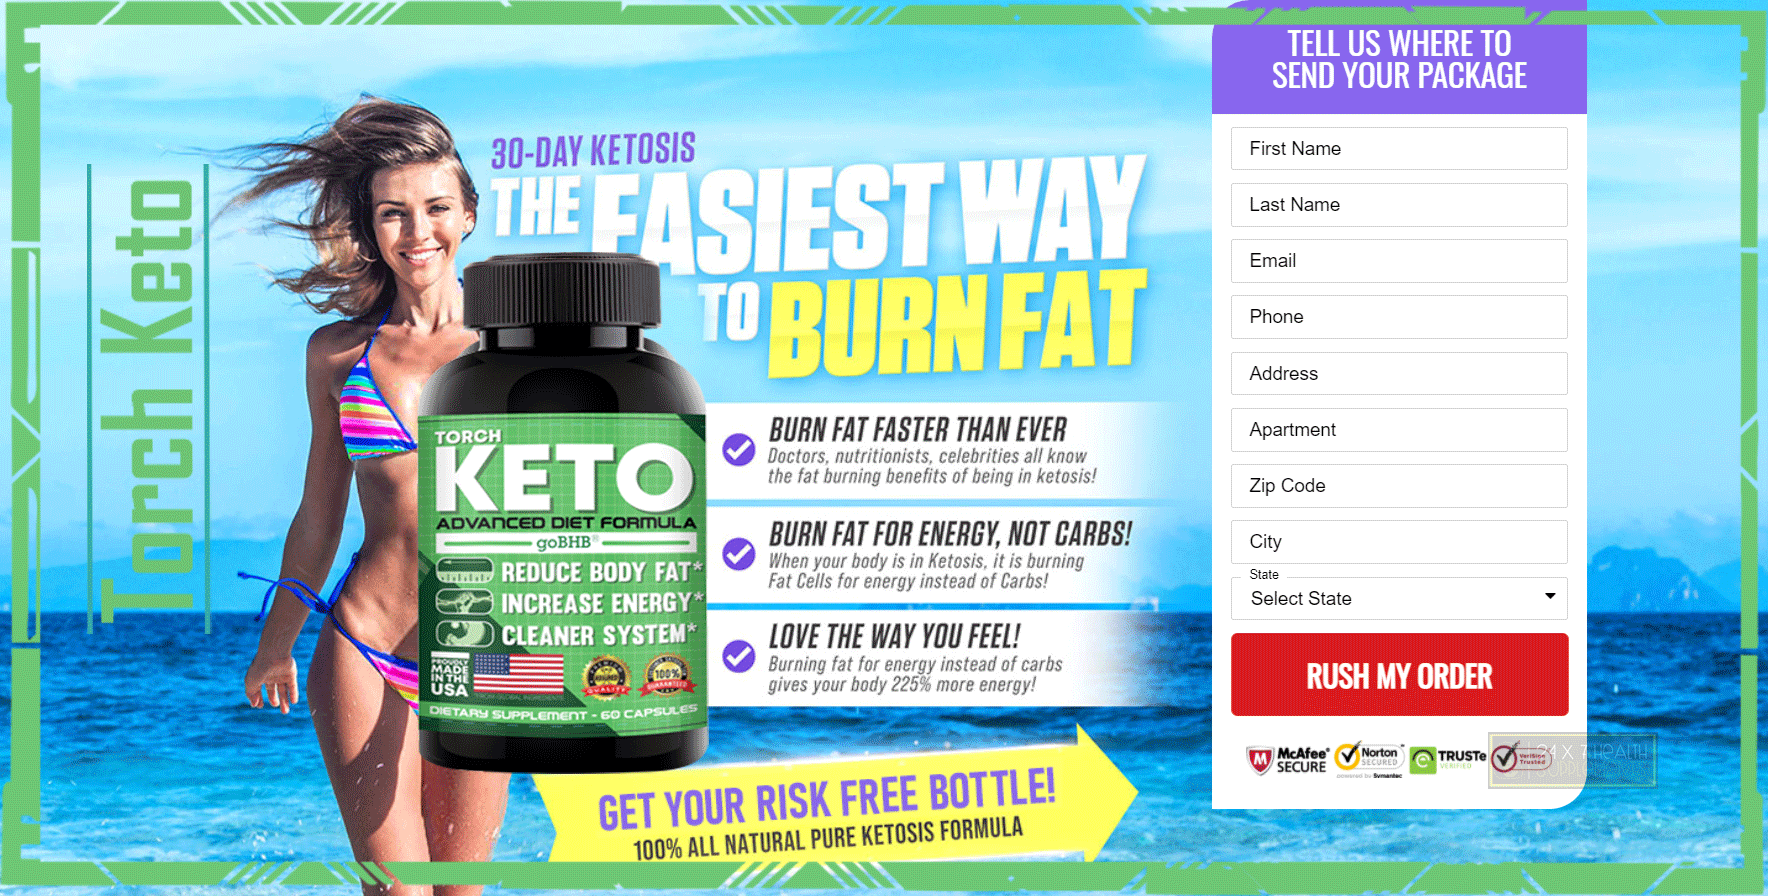 torch-keto-buy5